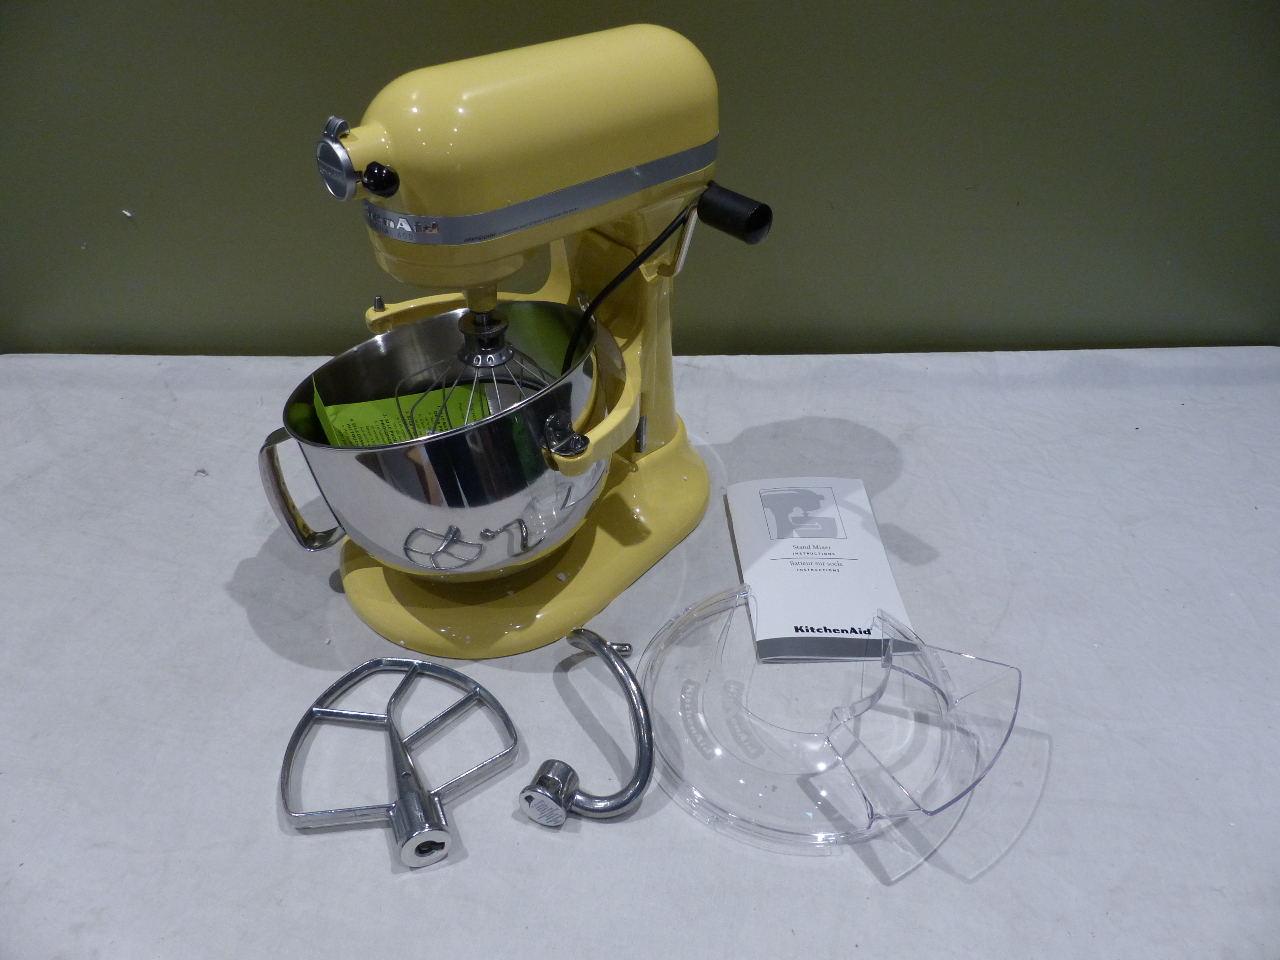 KITCHENAID PRO 600 SERIES 6QT MAJESTIC YELLOW STAND MIXER  -> Kitchenaid Yellow